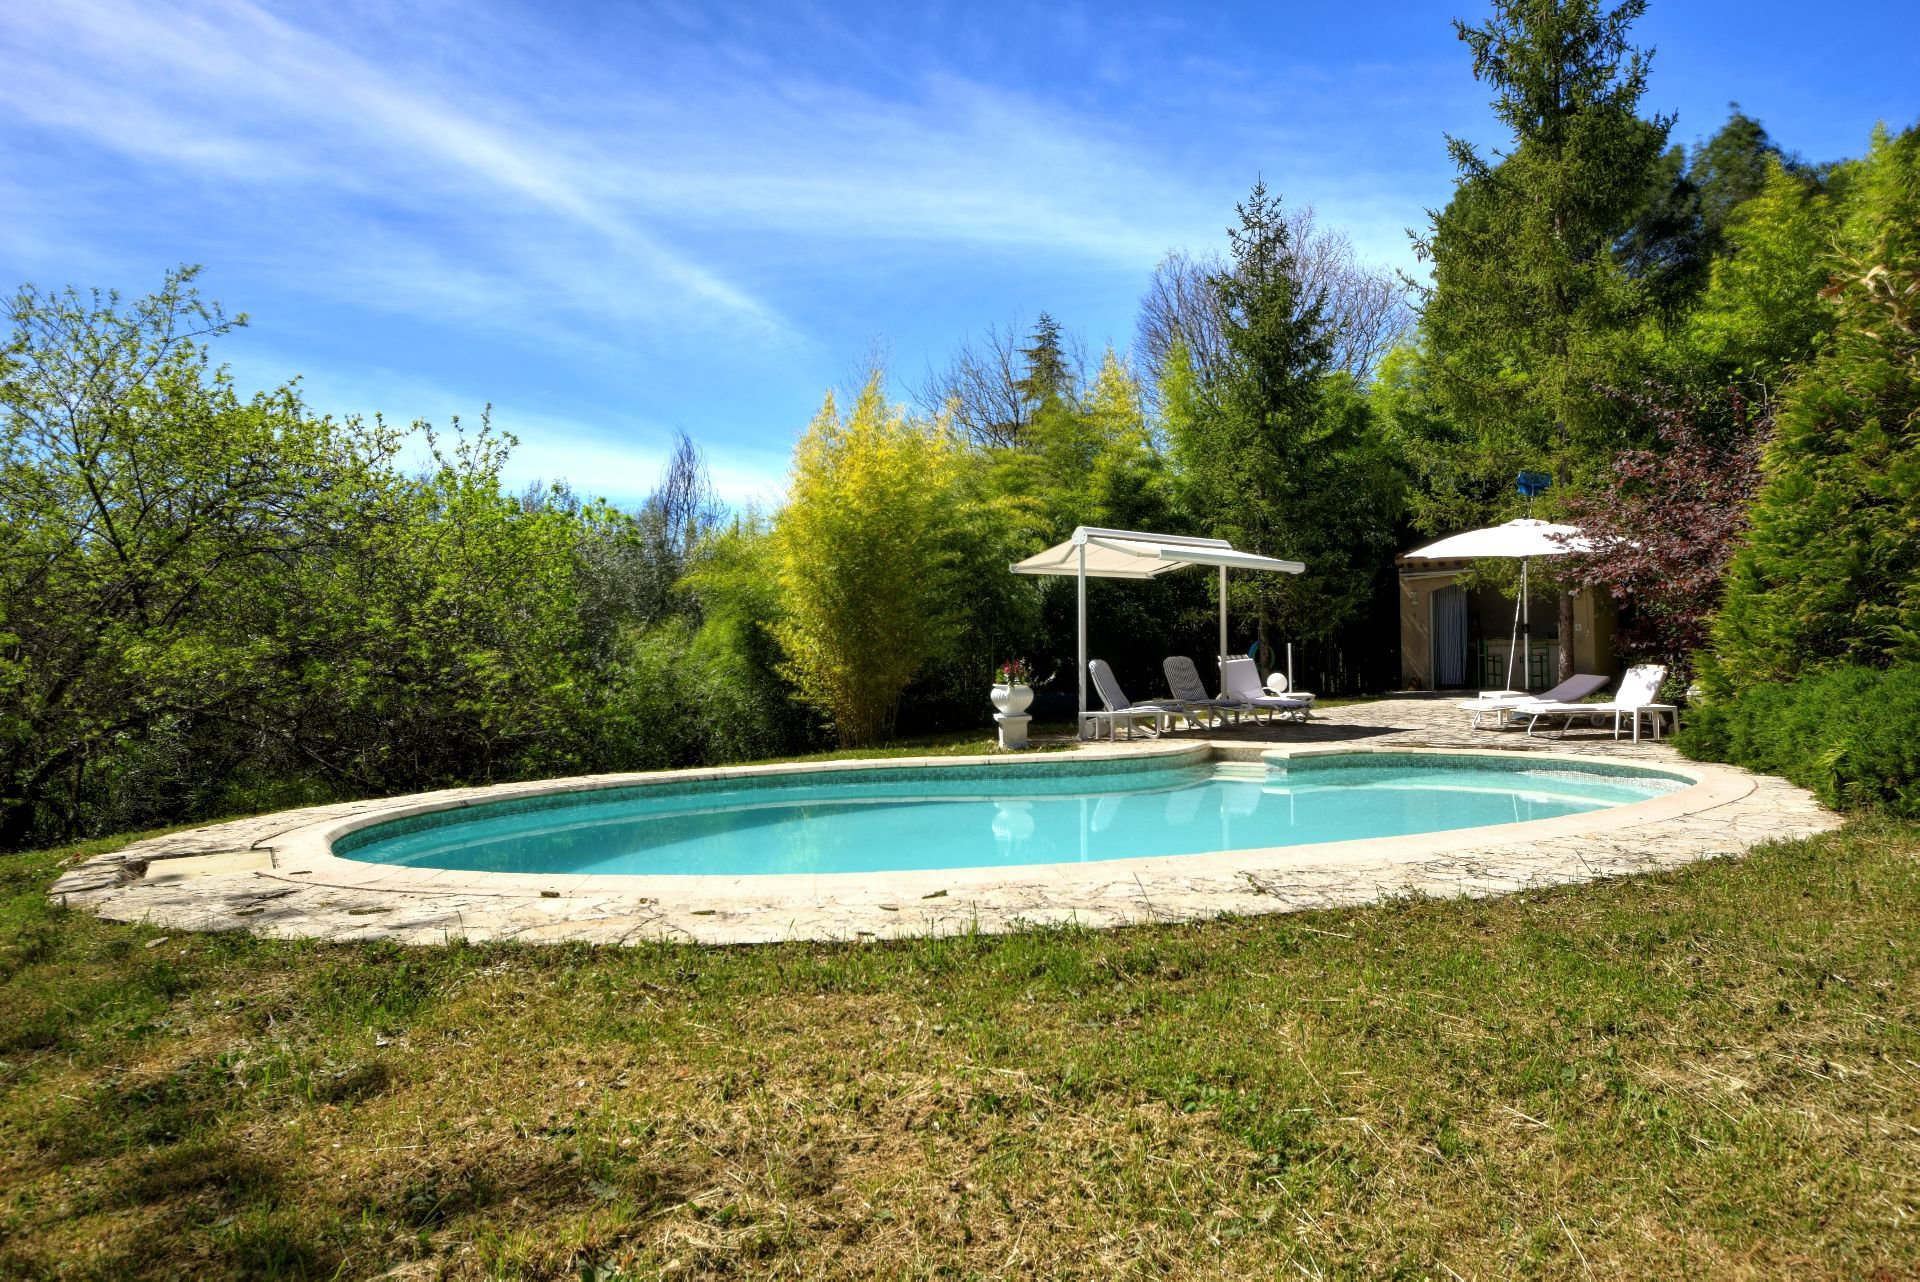 Pool in a private setting, Salernes, Var Verdon